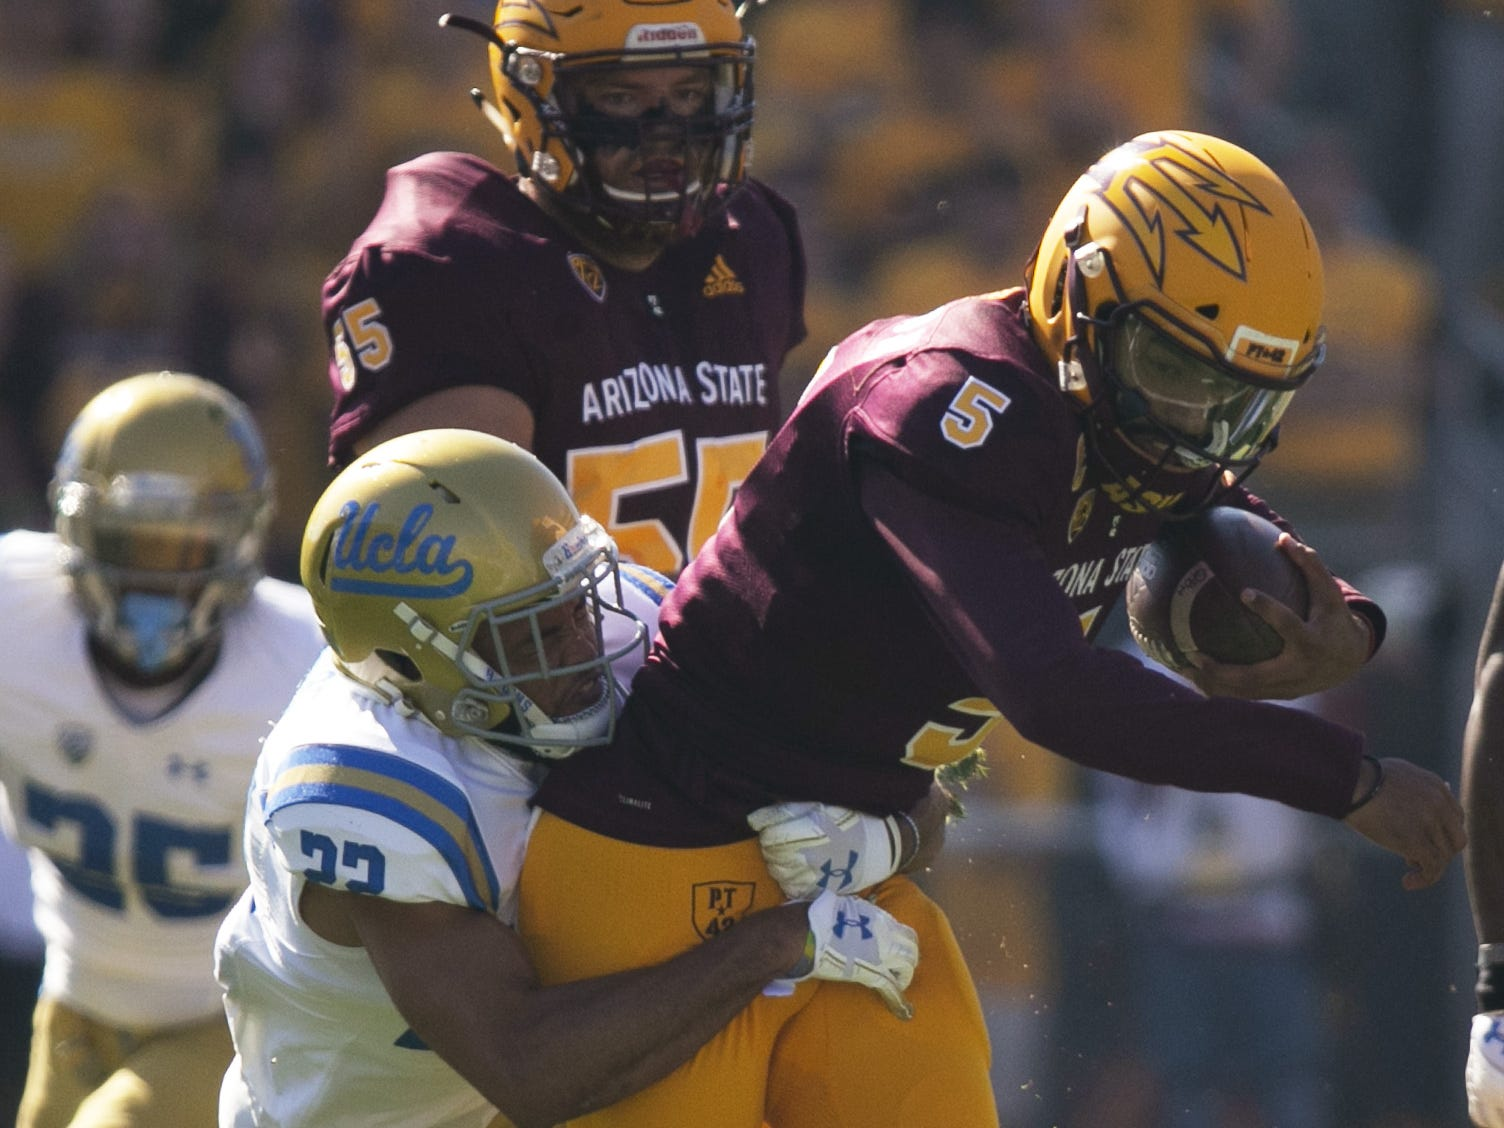 ASU quarterback Manny Wilkins carries the ball as UCLA defensive back Nate Meadors makes the tackle during the first quarter of the PAC-12 college football game at Sun Devil Stadium in Tempe on Saturday, November 10, 2018.